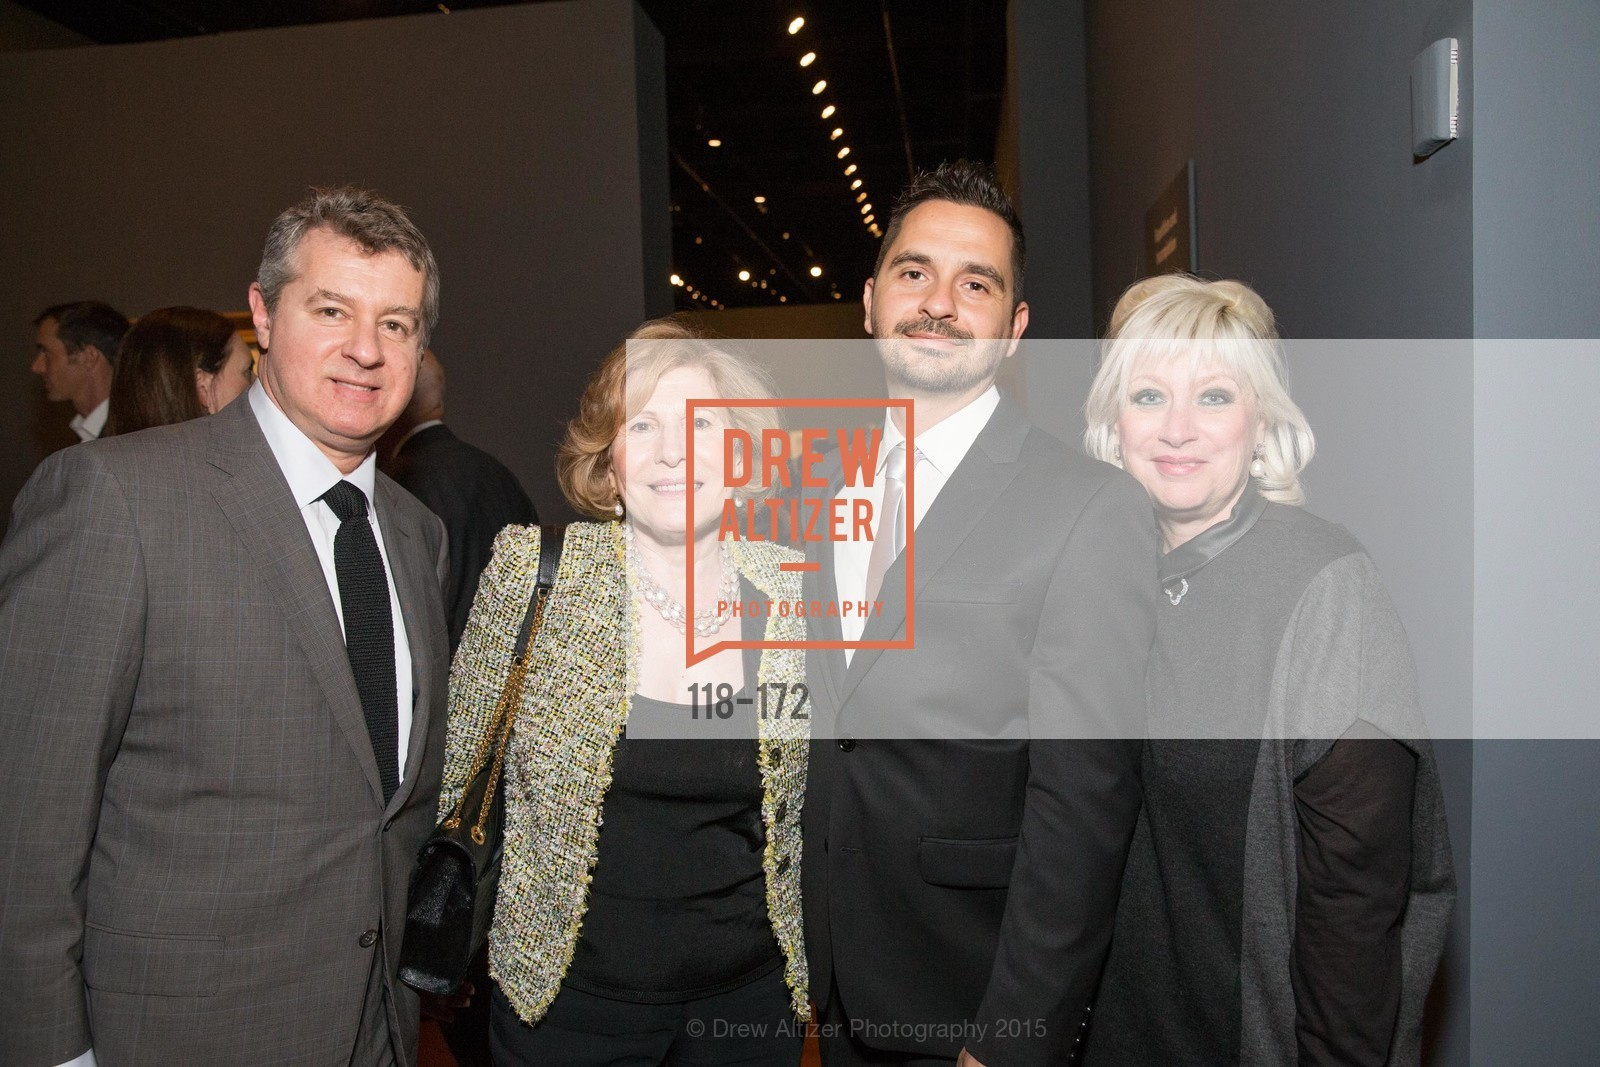 Peter Clerides, Tula Mouroufas, Chris Maroufas, Thalia Stratton, J.M.W. Turner: Painting Set Free opening reception, de Young Museum, June 17th, 2015,Drew Altizer, Drew Altizer Photography, full-service agency, private events, San Francisco photographer, photographer california